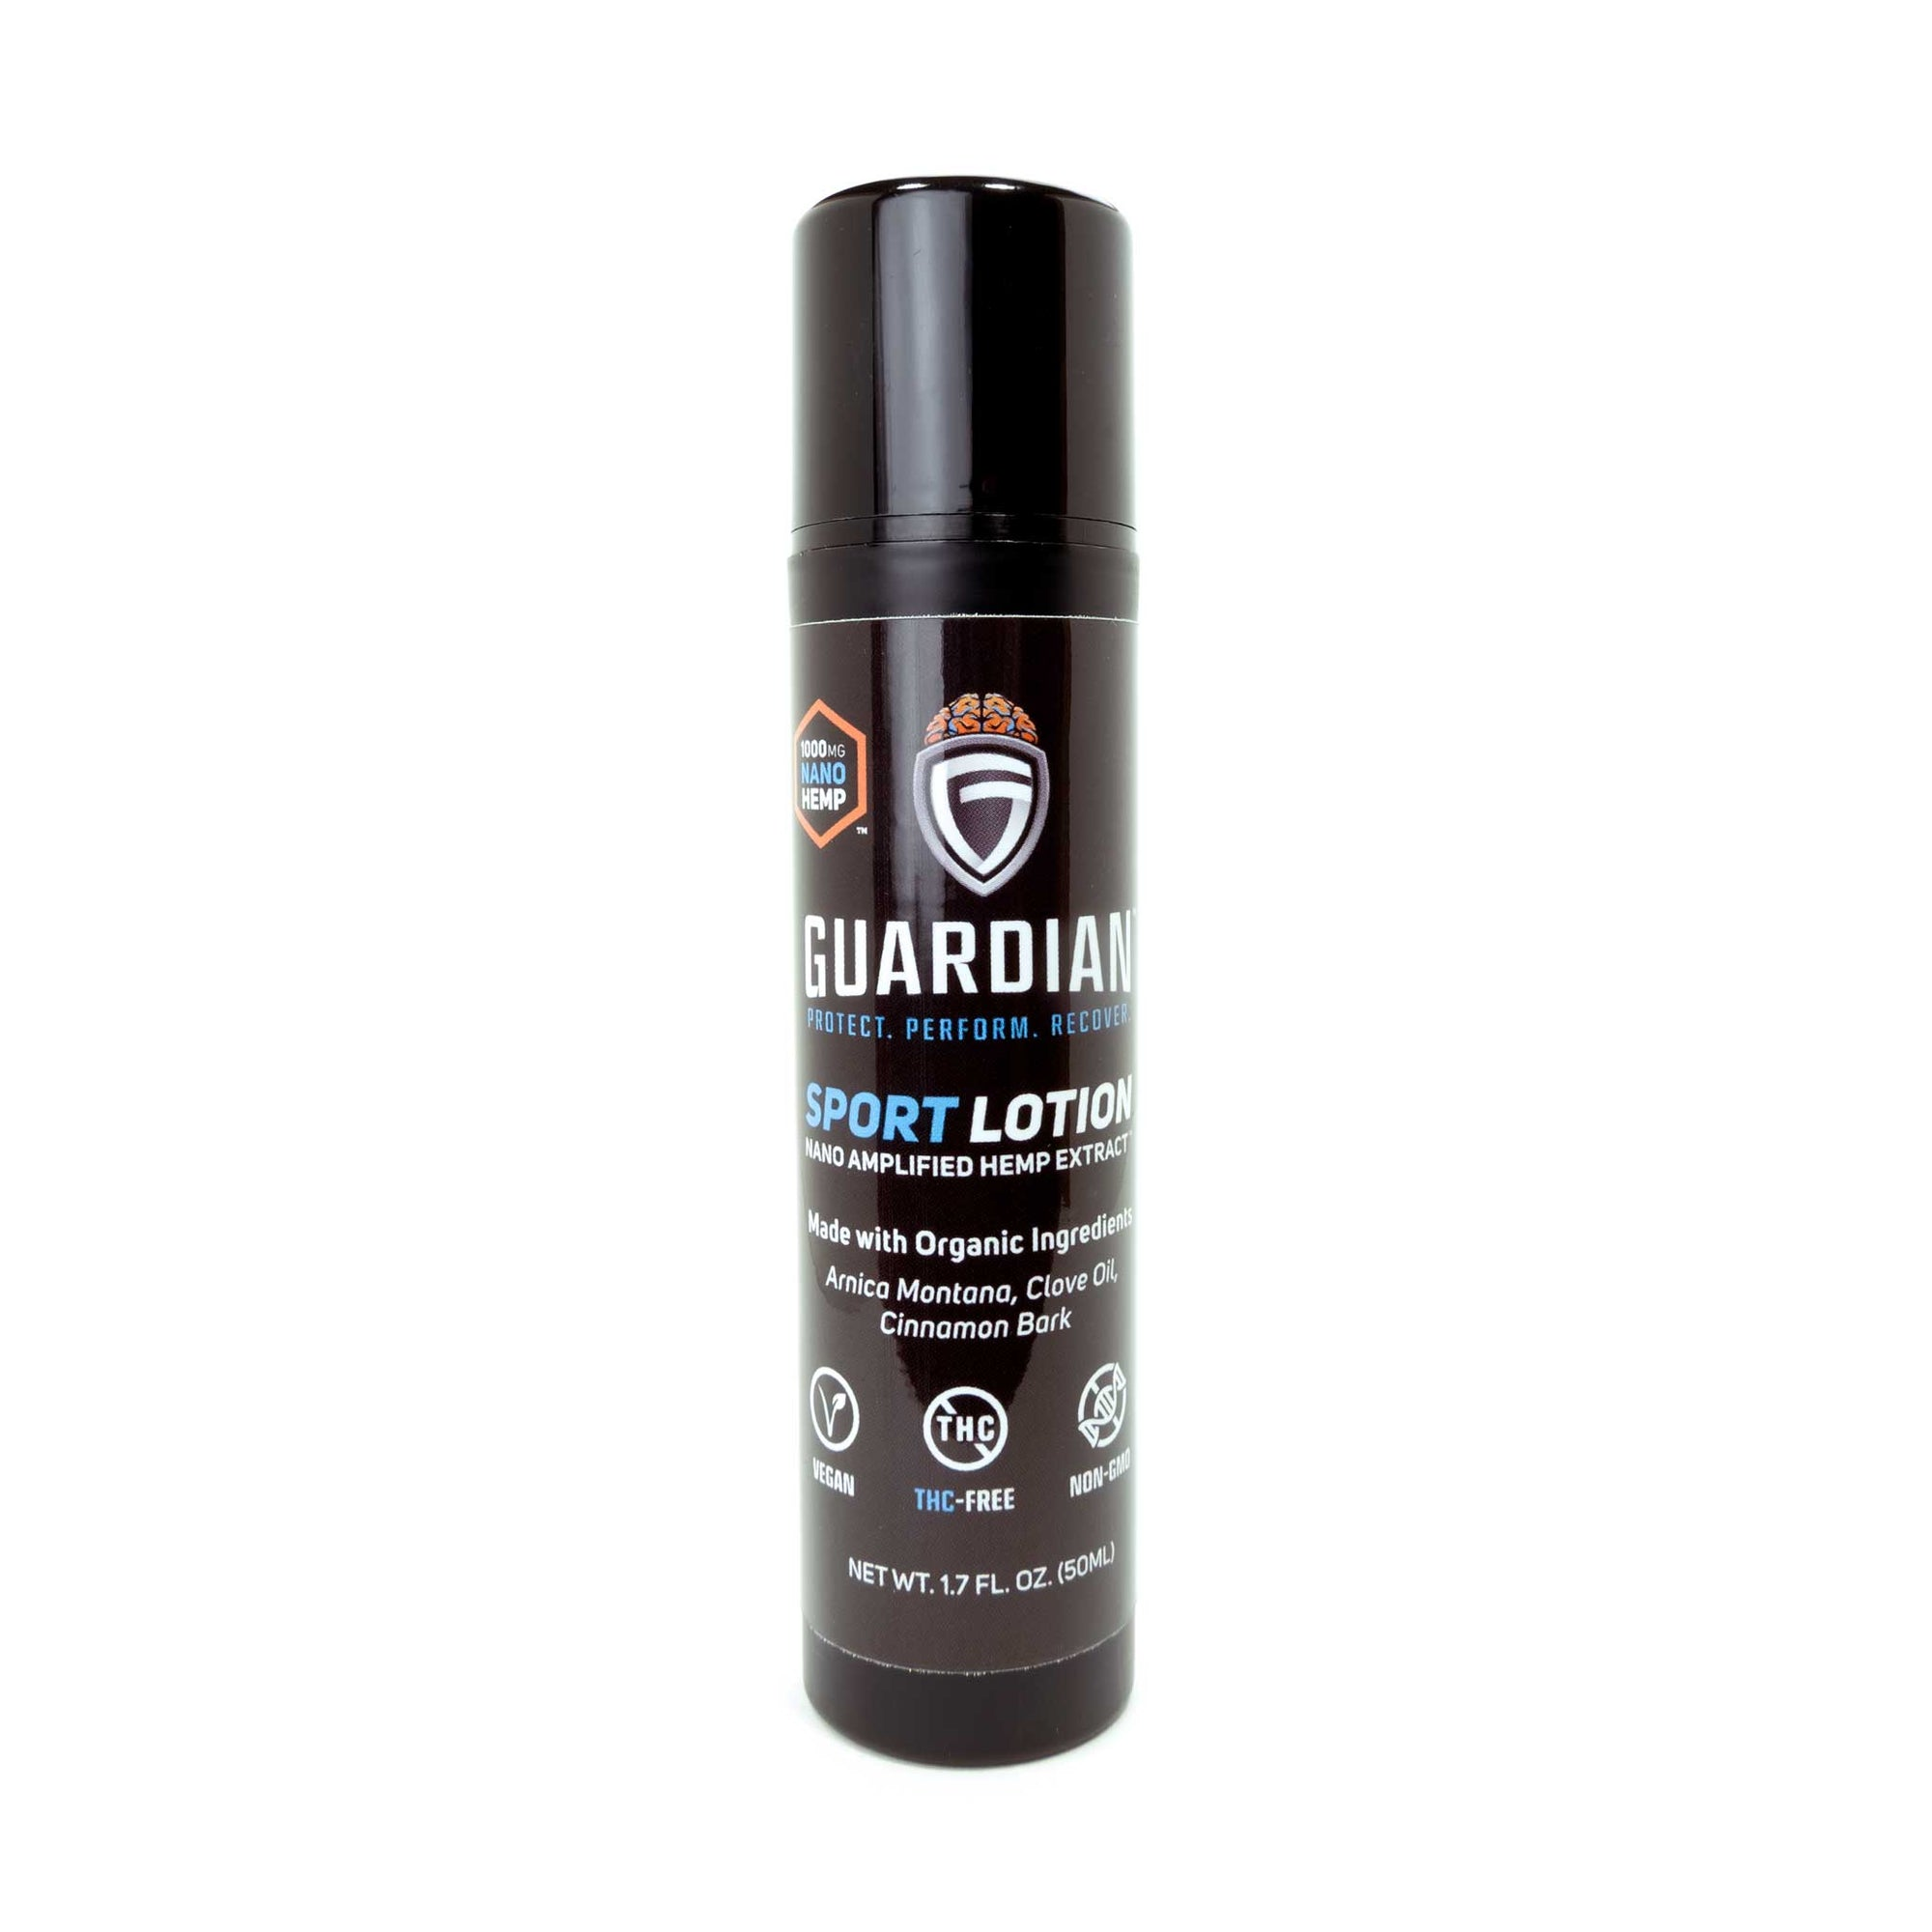 Guardian Sport Lotion 1000mg